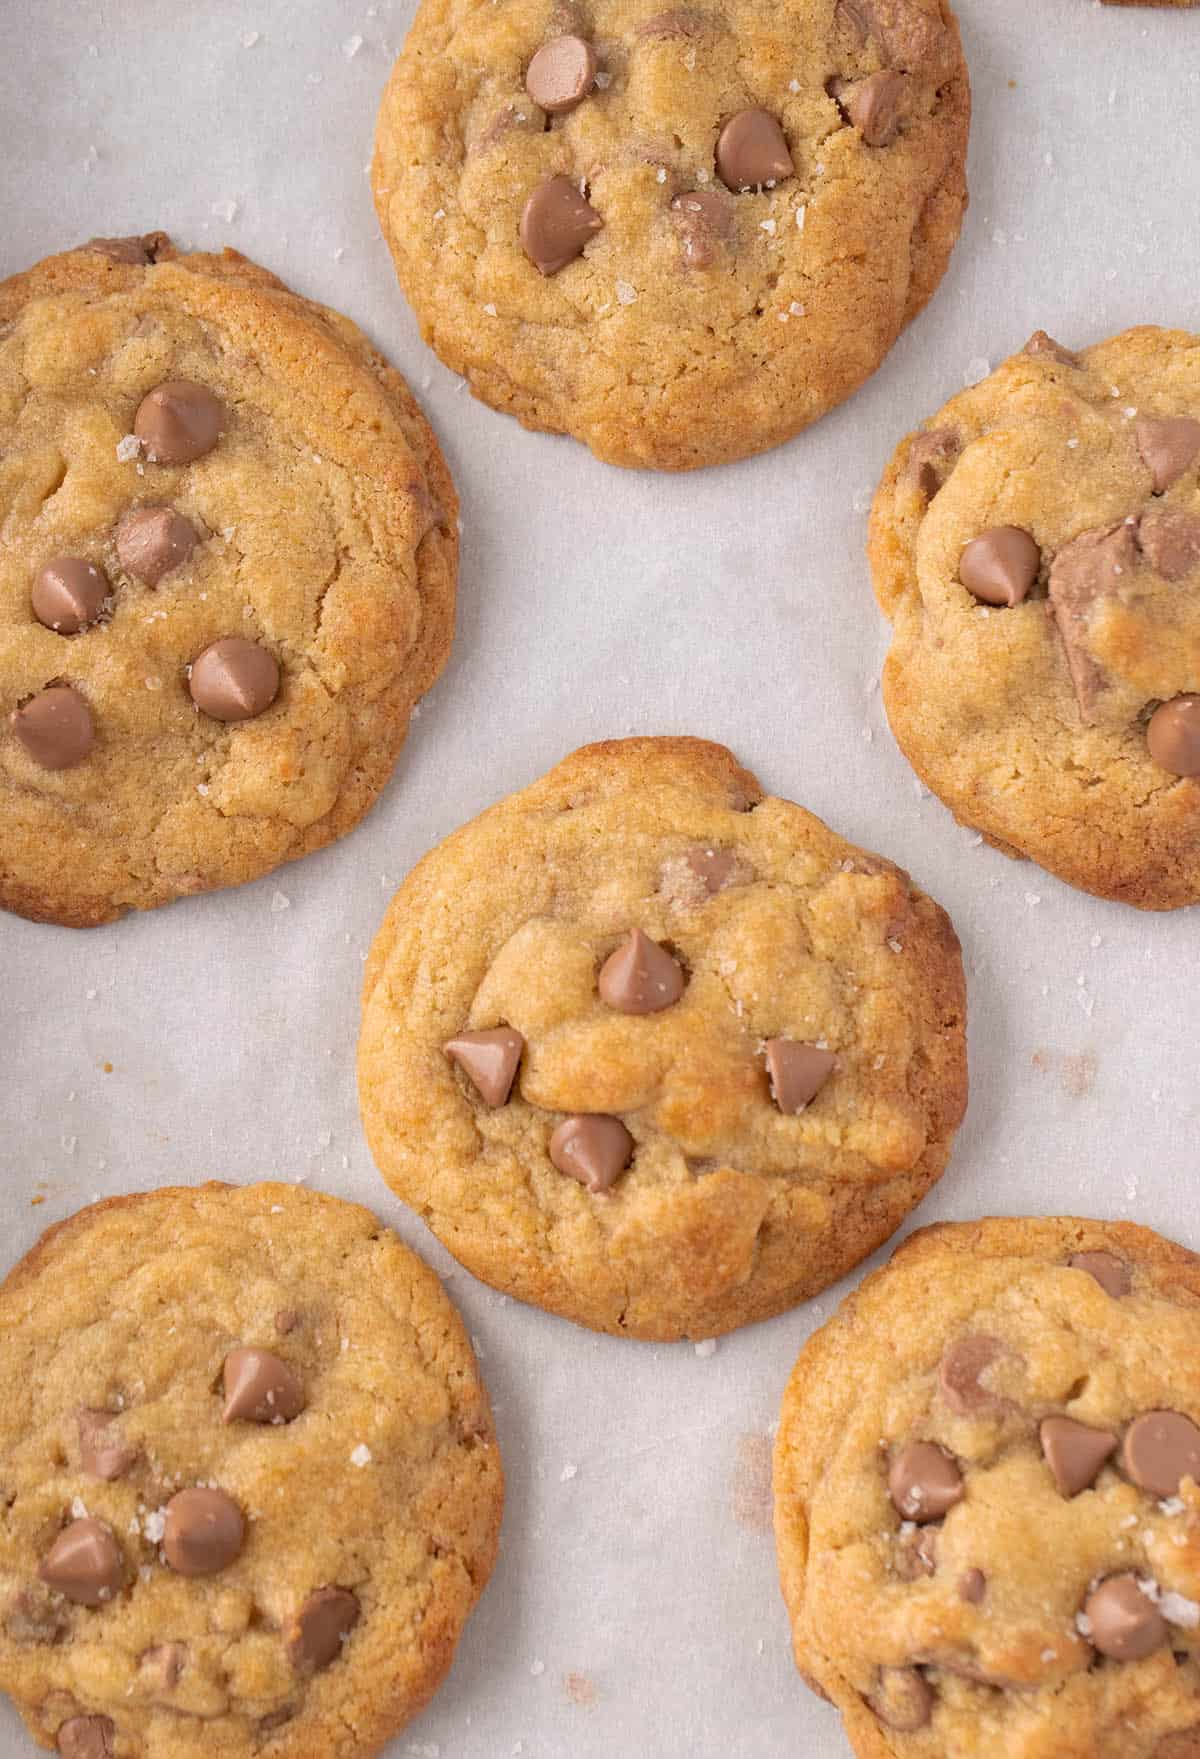 An overhead shot of a batch of chocolate chip cookies